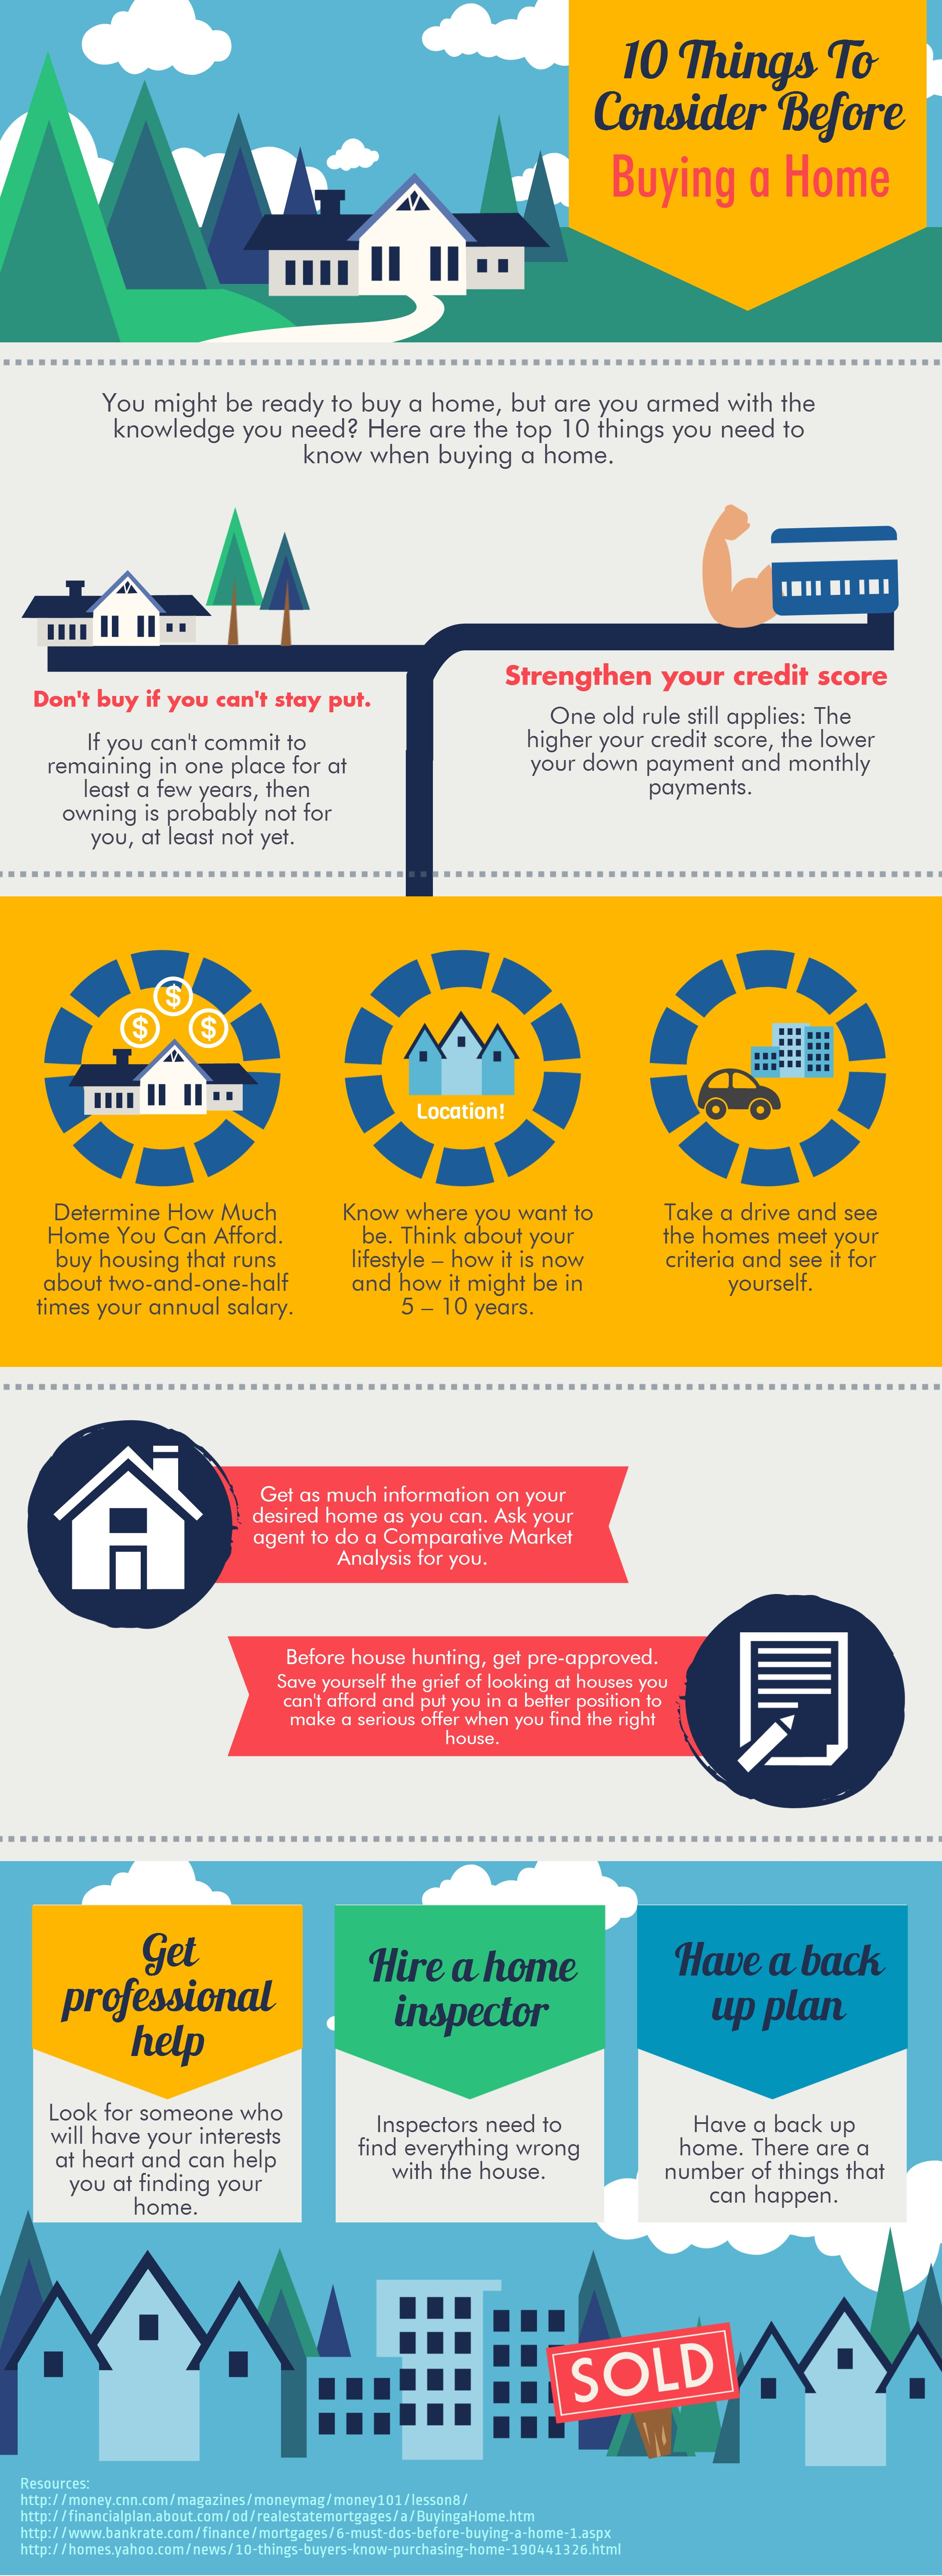 10 Things to Consider Before Buying a Home [Infographic]